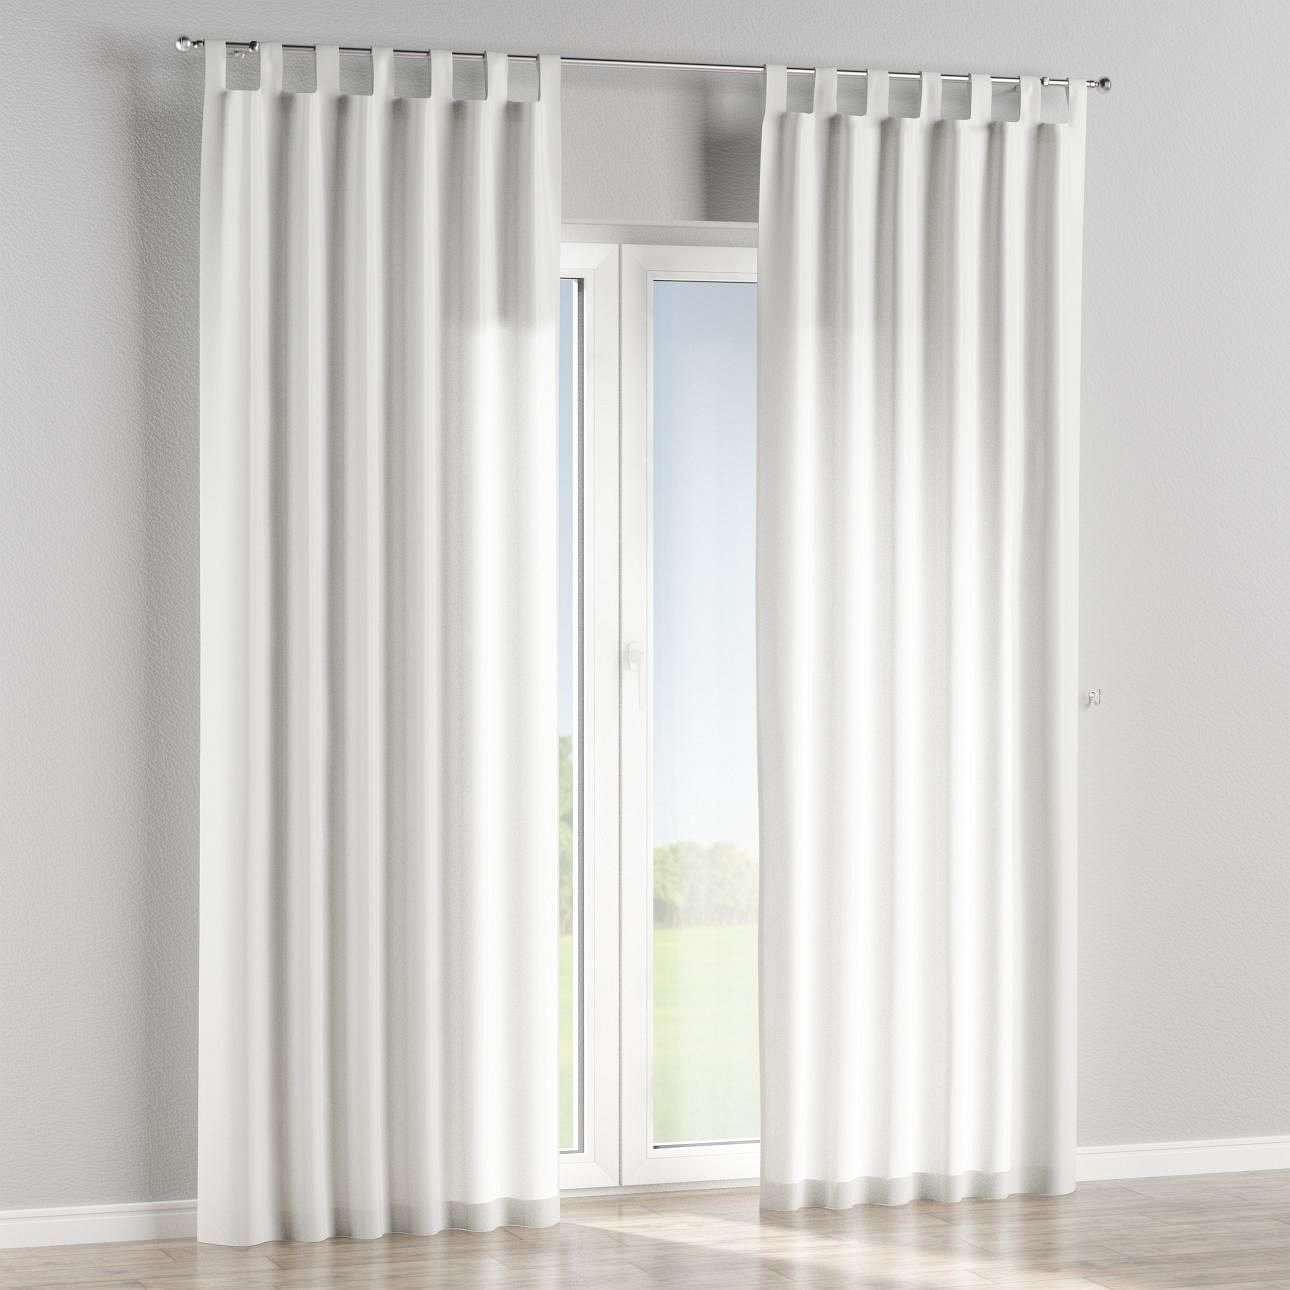 Tab top lined curtains in collection Freestyle, fabric: 137-60